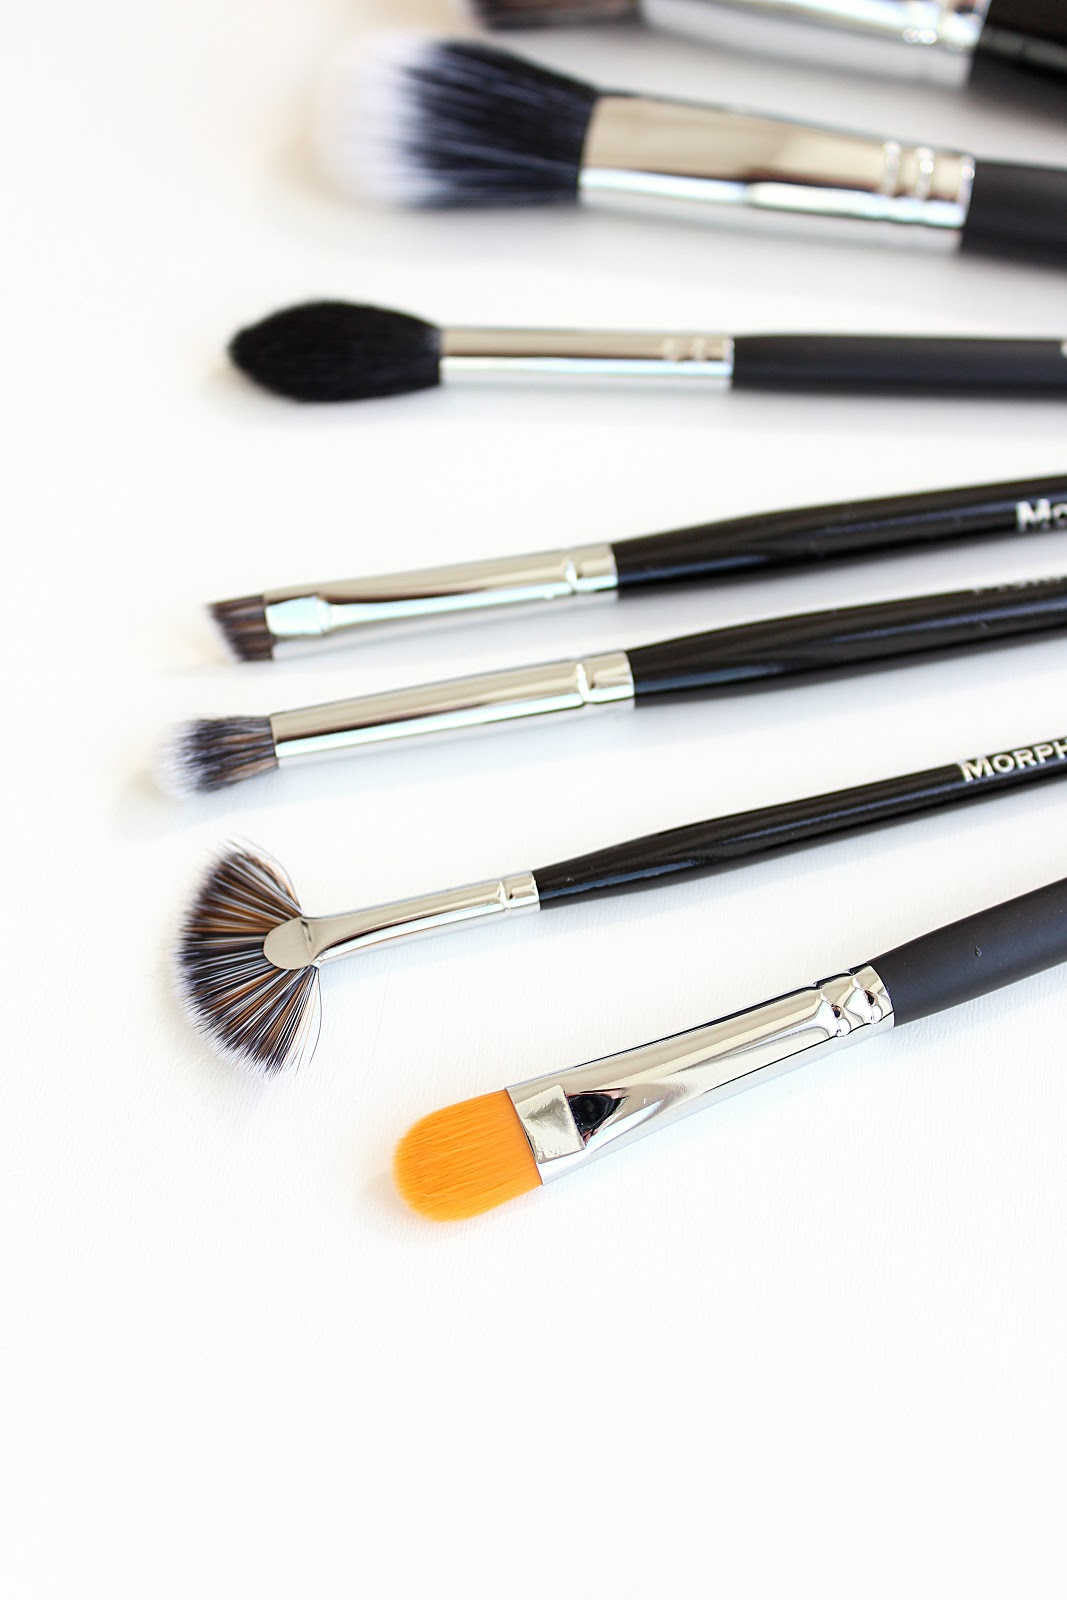 Morphe Brushes Haul | Life in Excess Blog